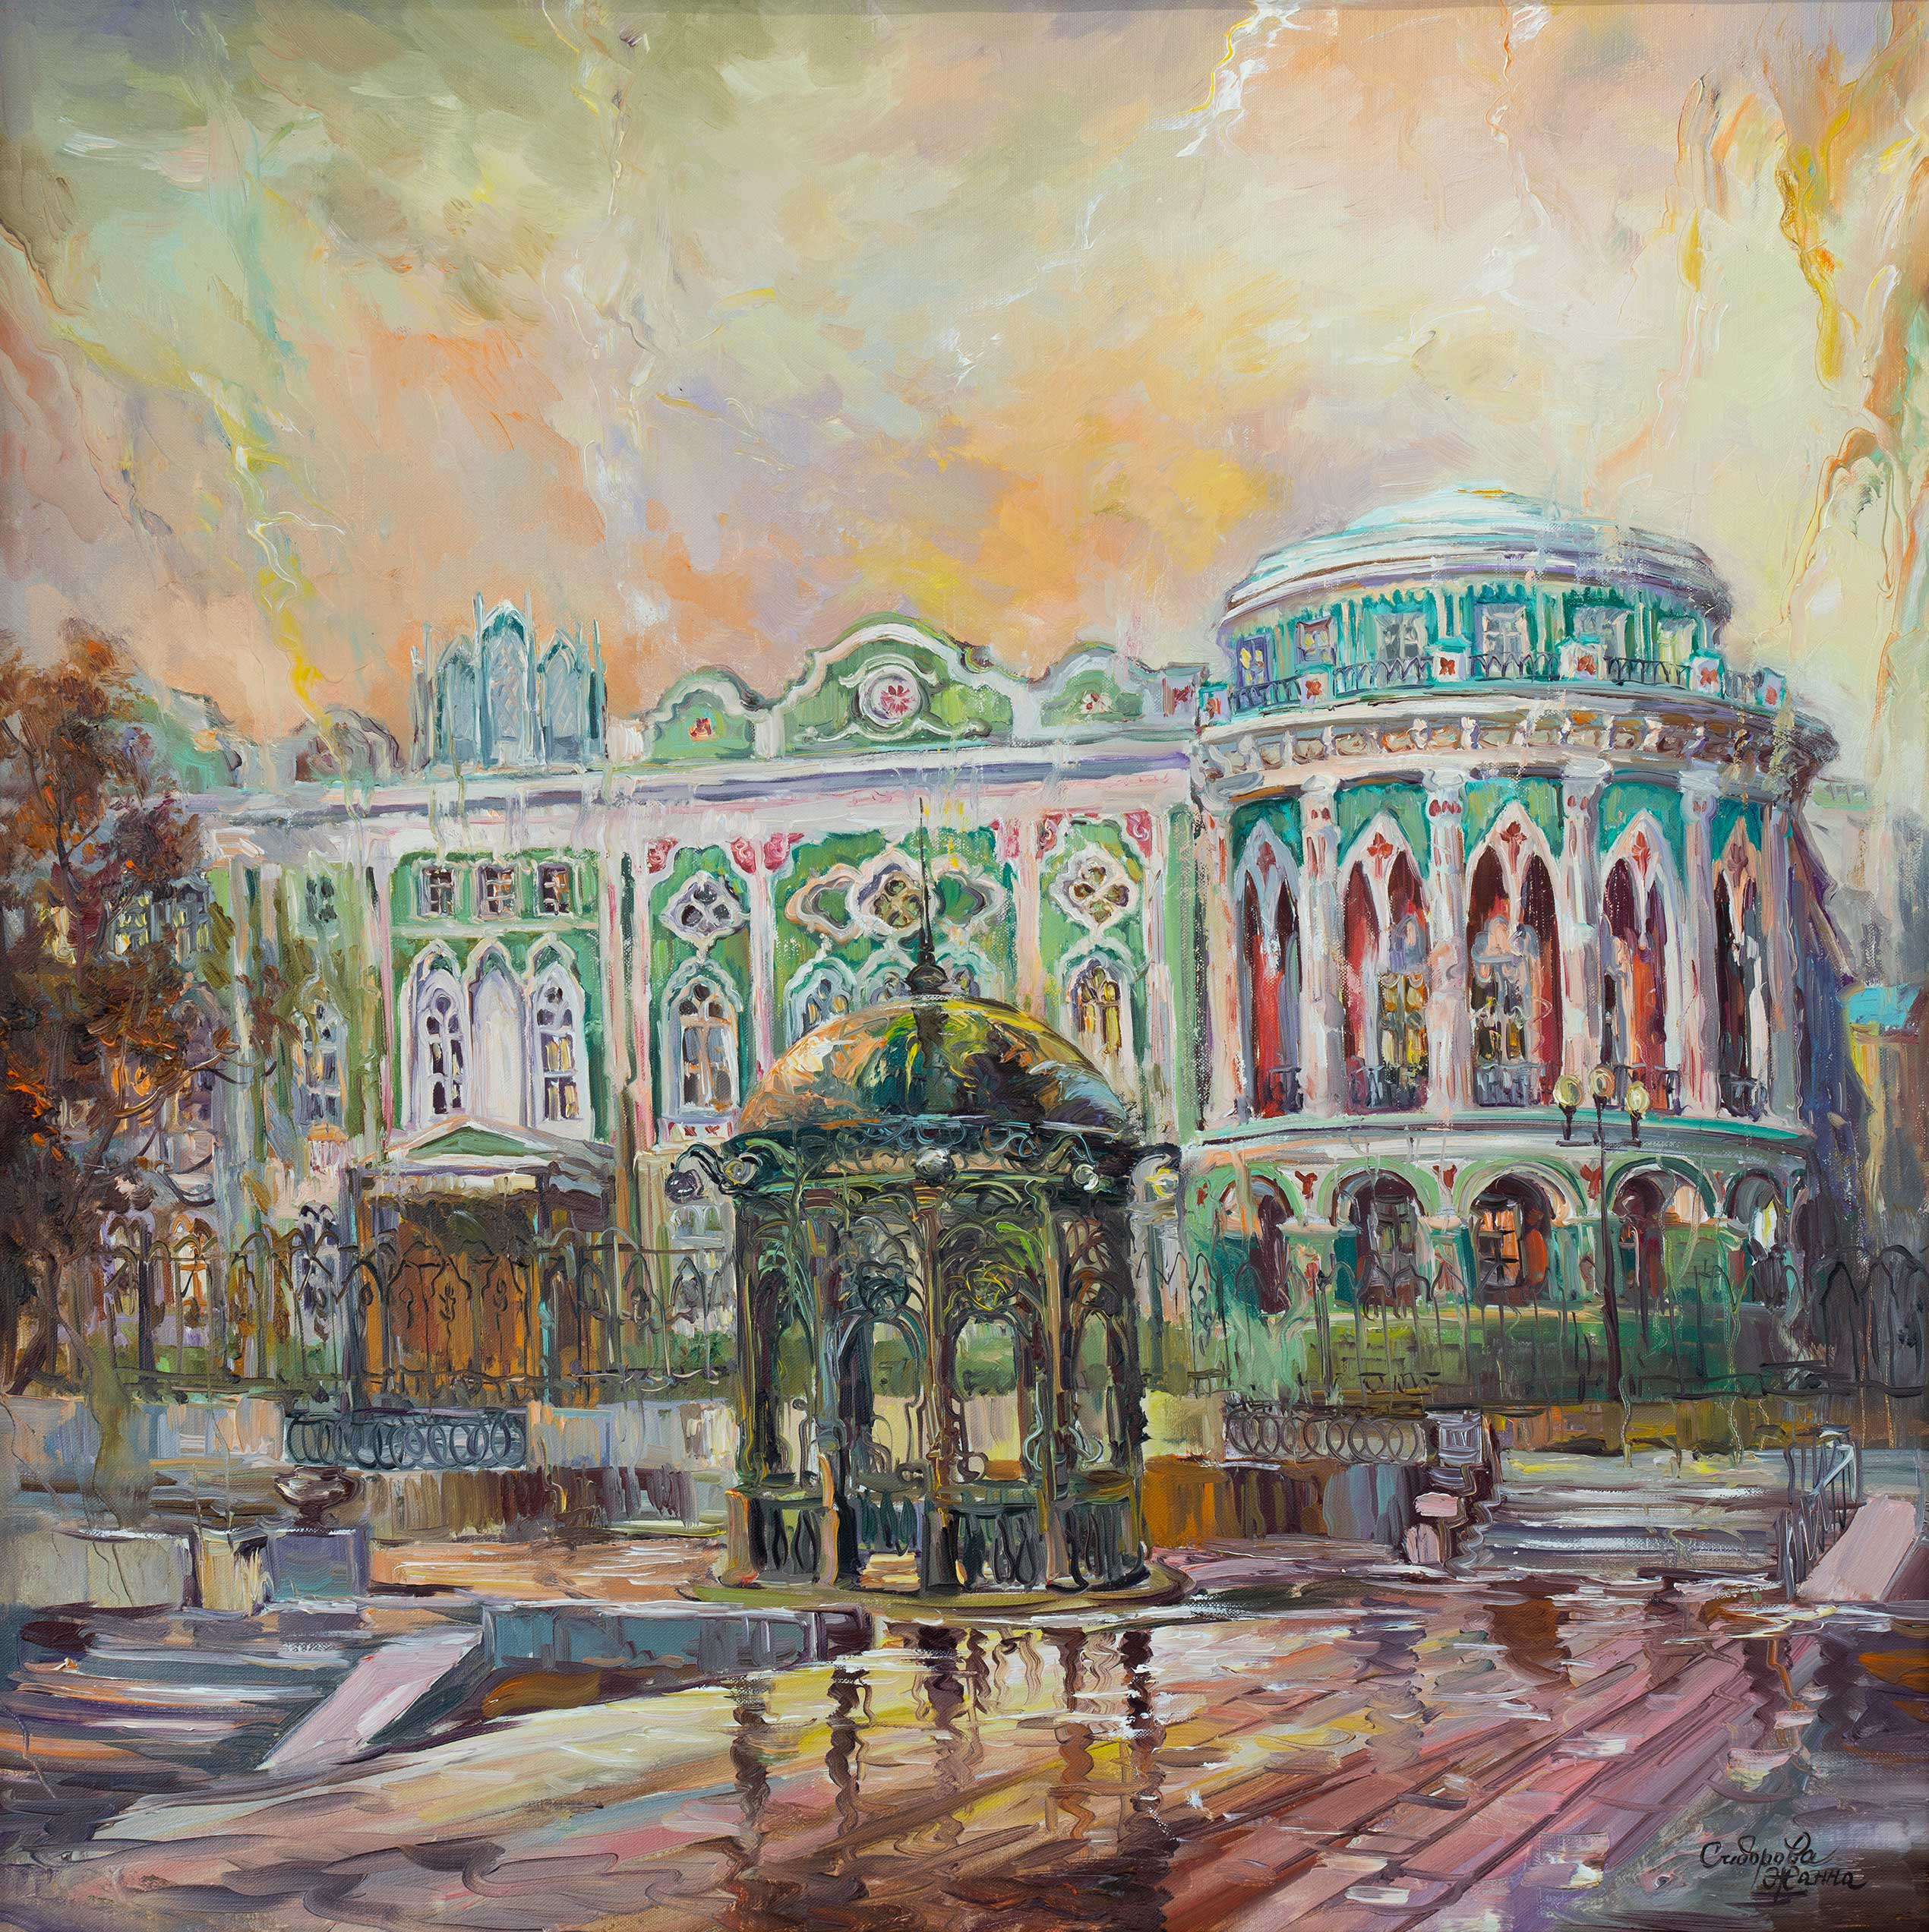 , Zhanna Sidorova, Buy the painting Oil